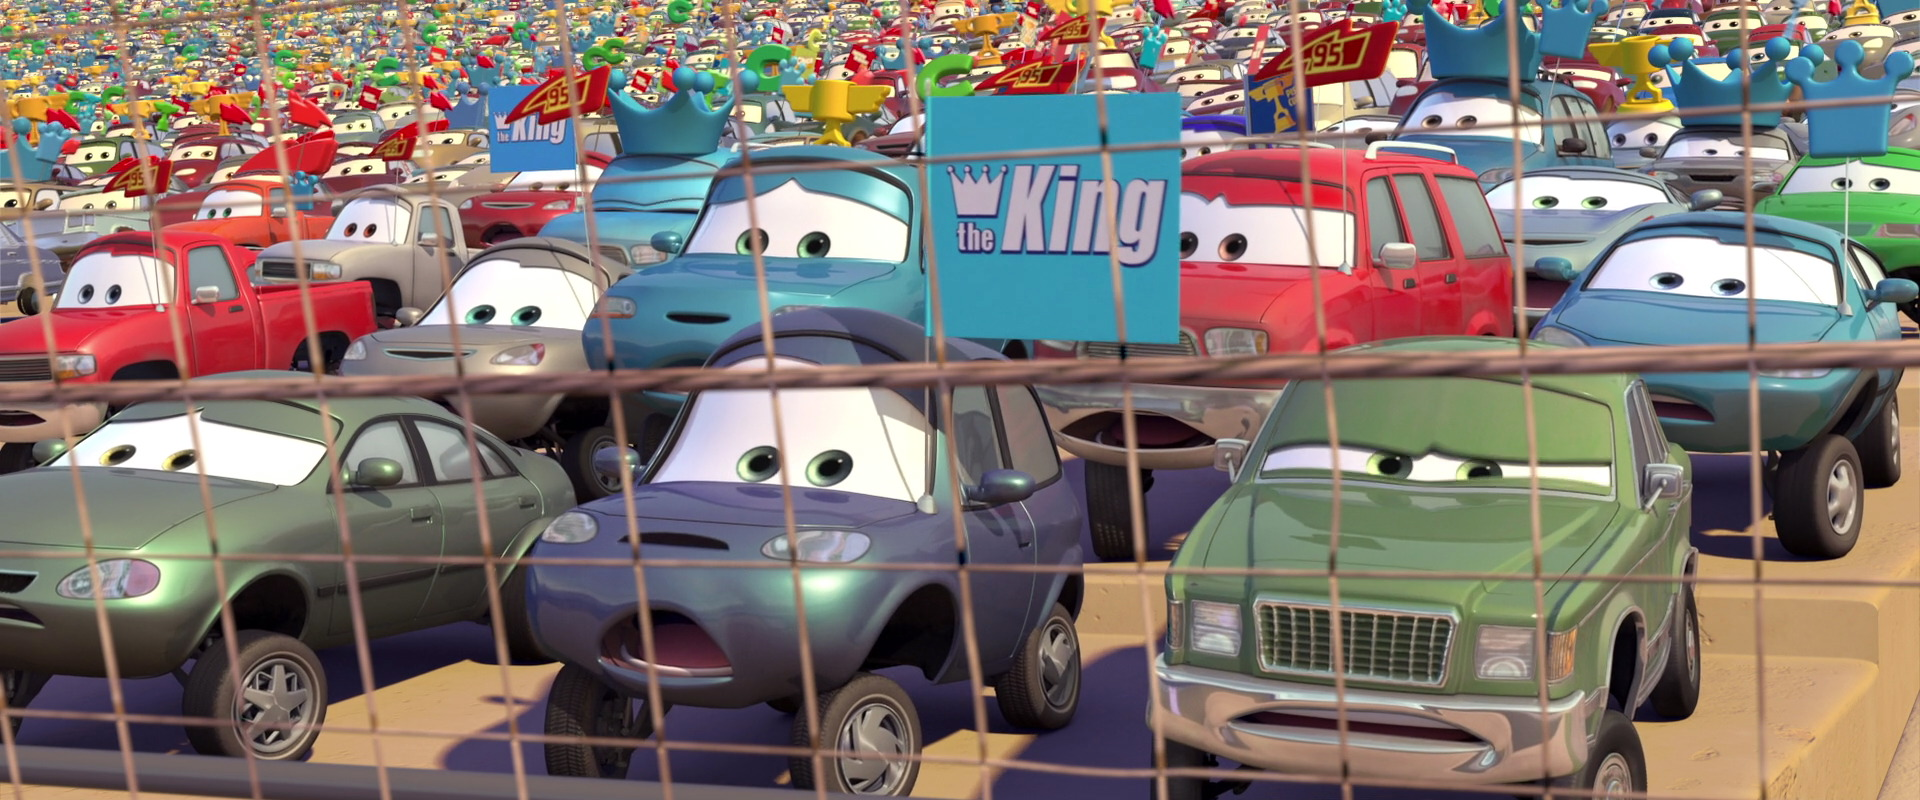 milo personnage character pixar disney cars